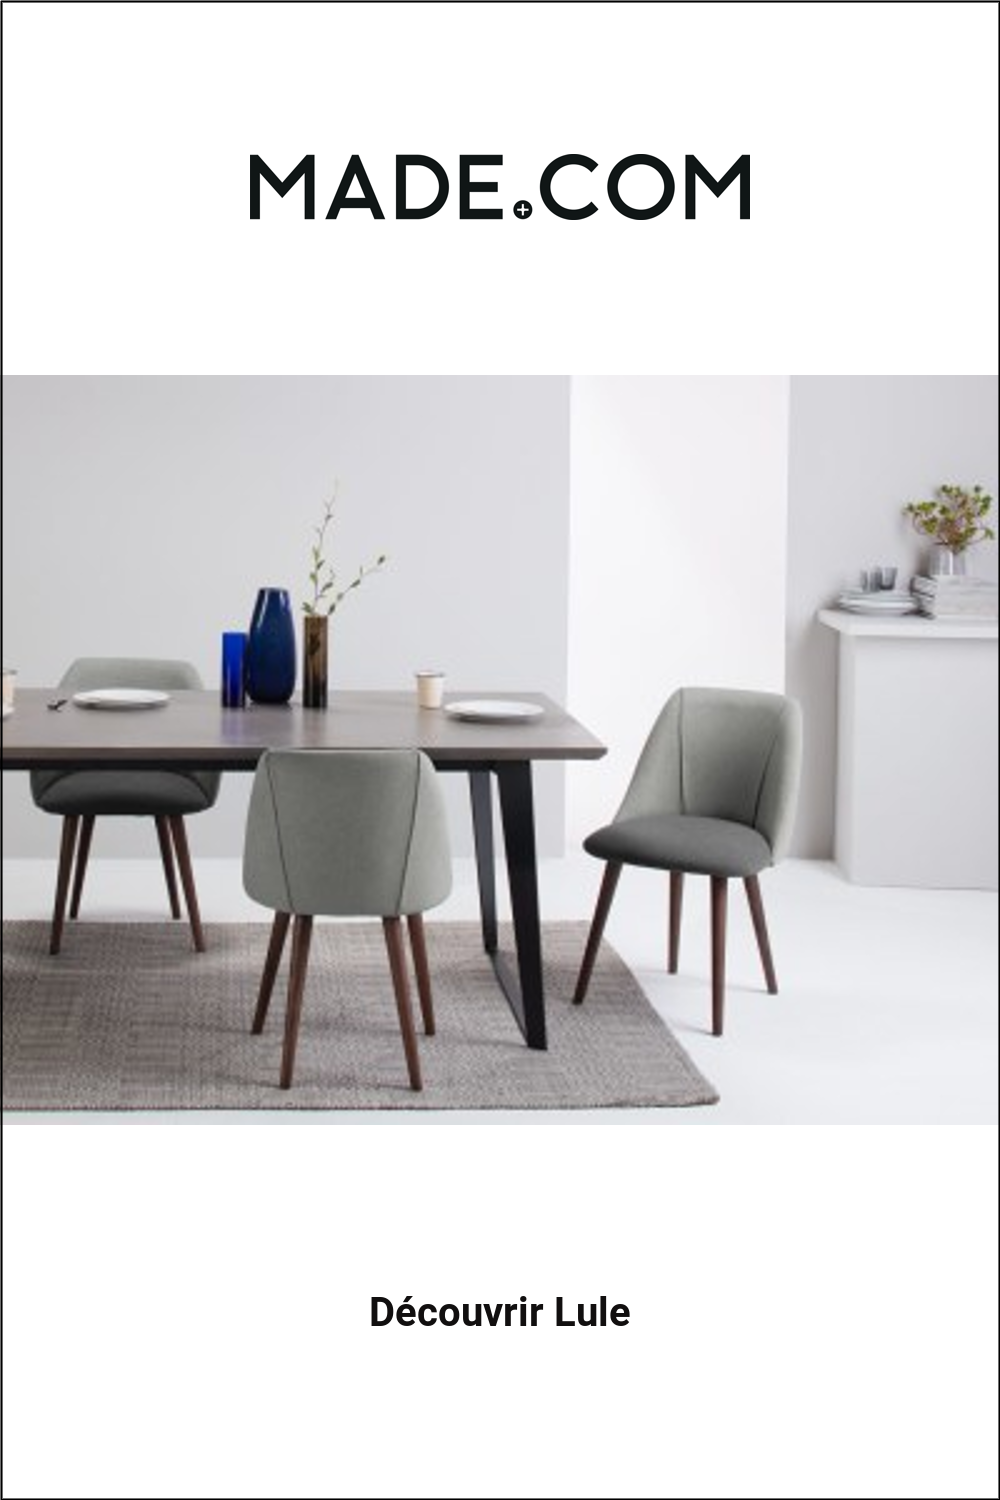 MADE.COM Chaises Salle À Manger Gris in 2020   Chair design